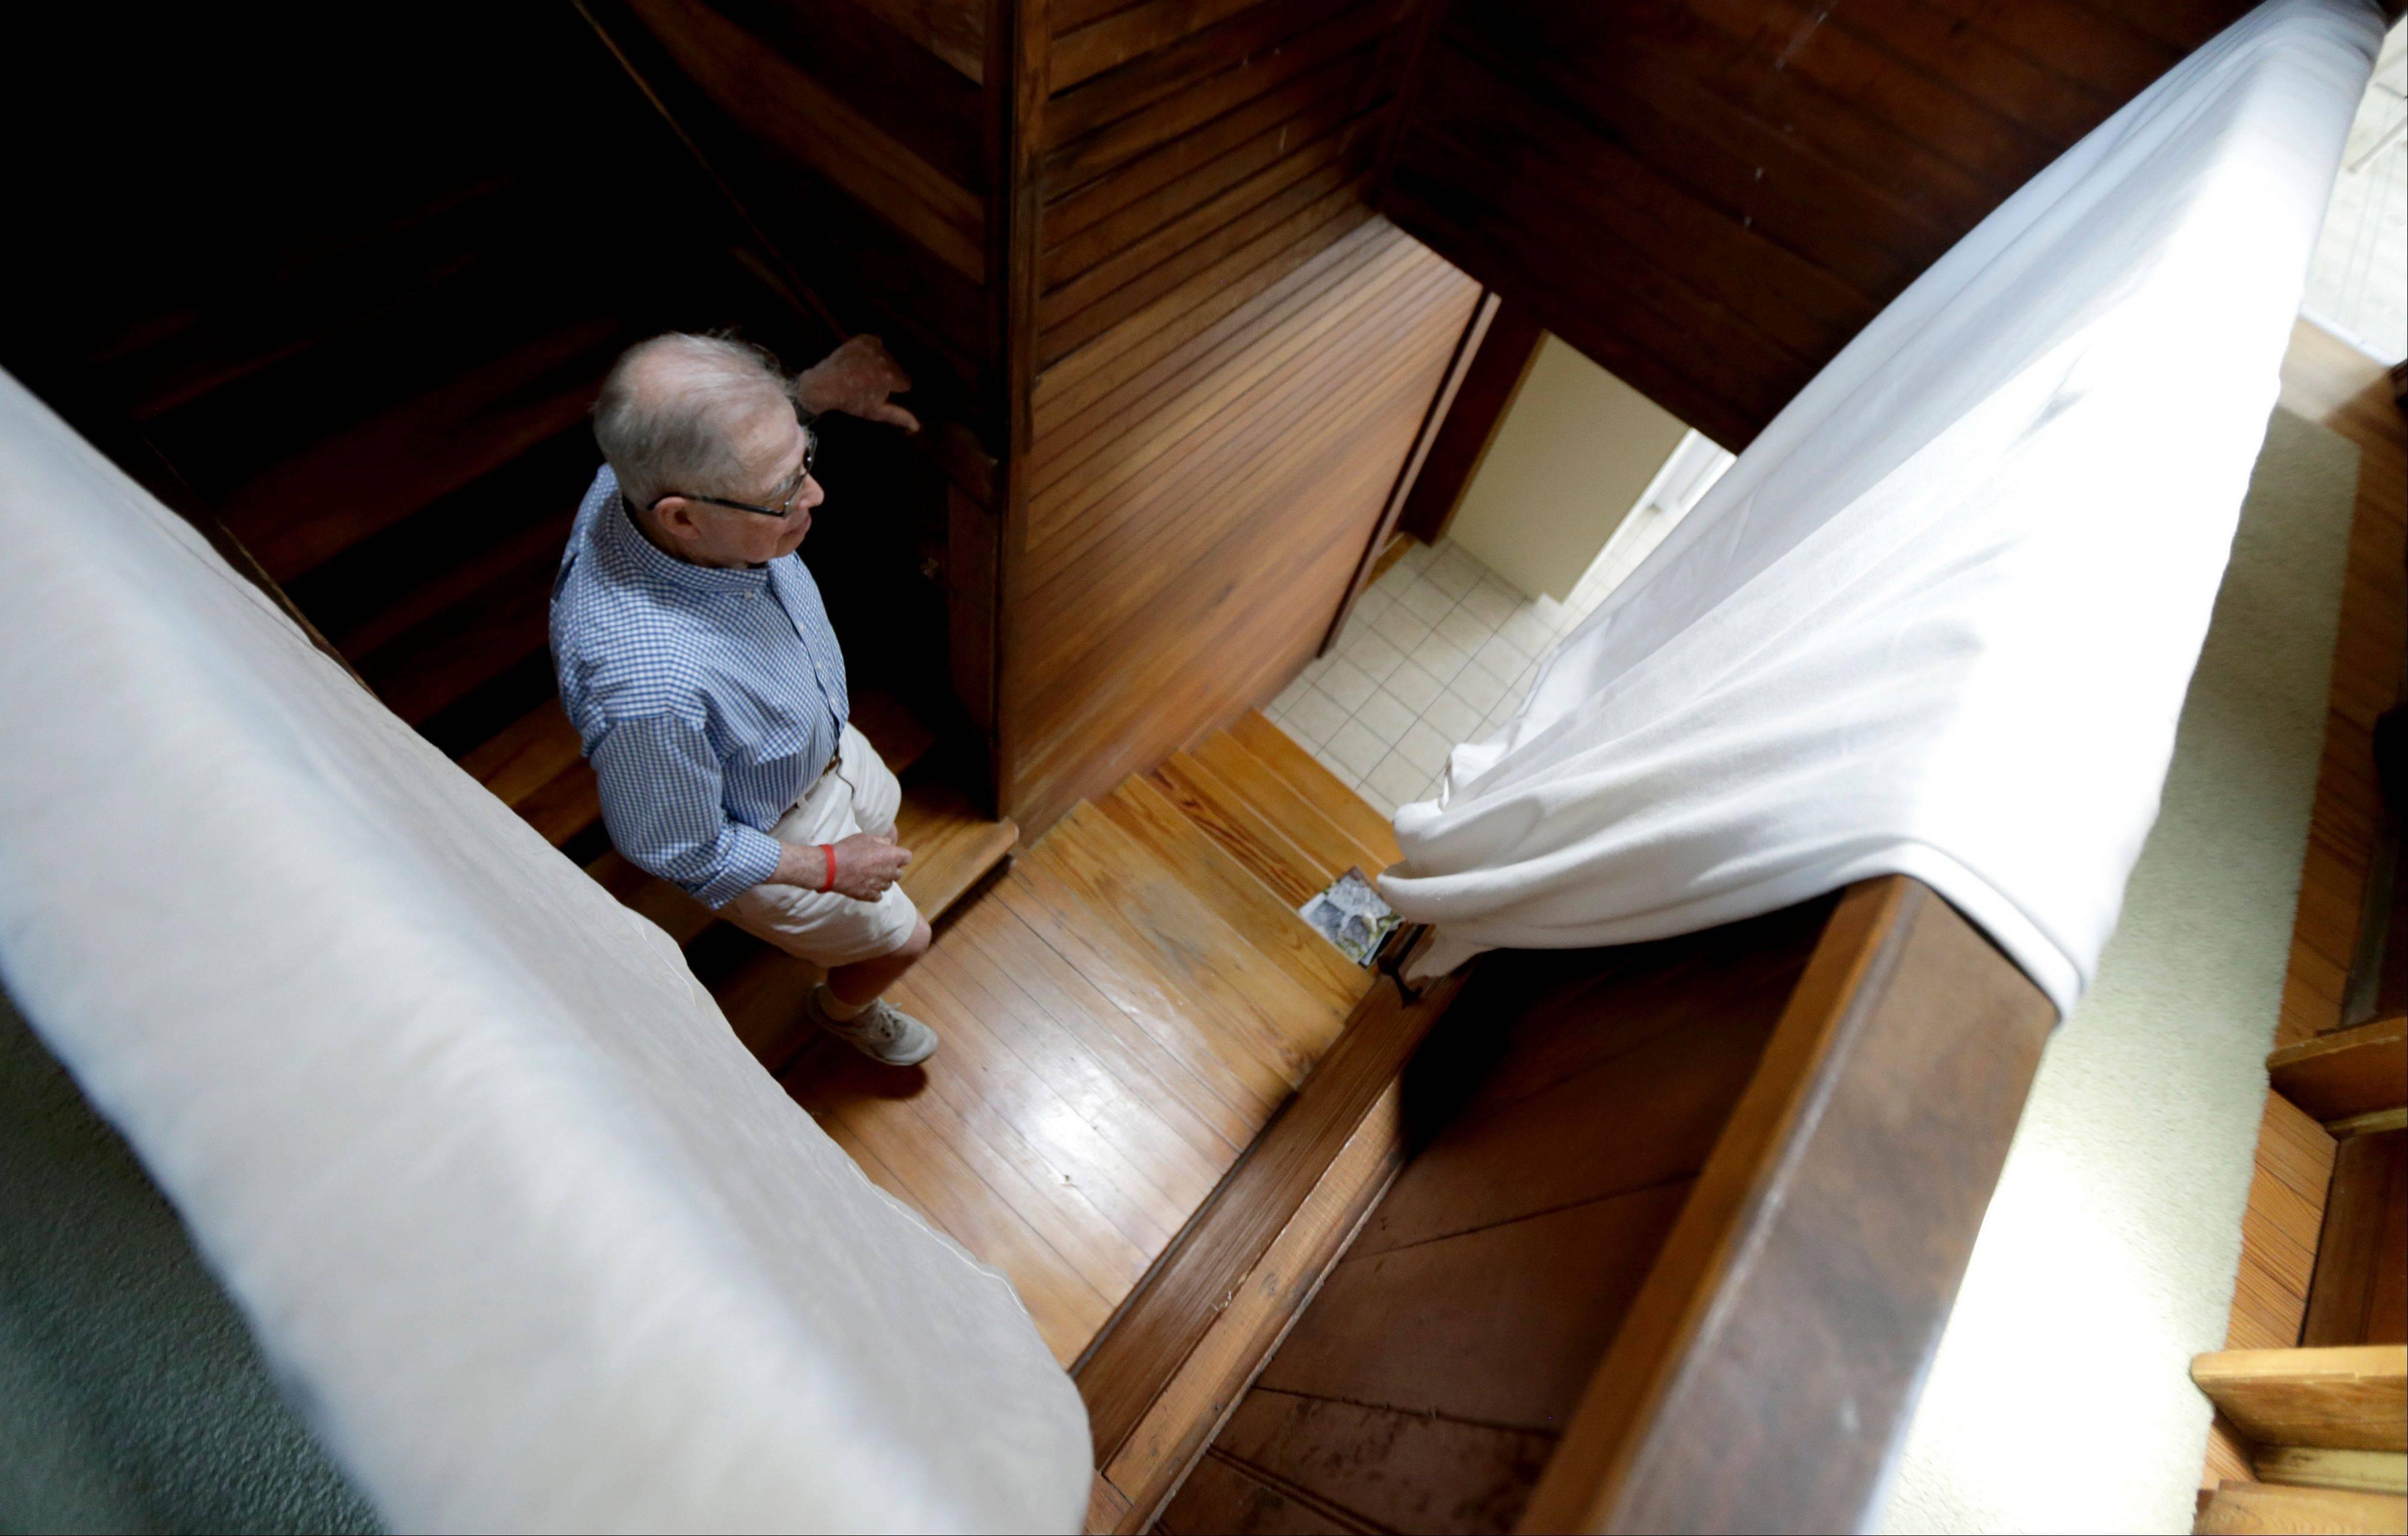 Robert Post, 85, walks down the stairs in his home, in Mantoloking, N.J., which was flooded during Superstorm Sandy last year. Post has a pacemaker that needs to be checked once a month by phone, but the phone company refuses to restore the area's landlines after they were damaged by the storm because it says phone lines are outdated.